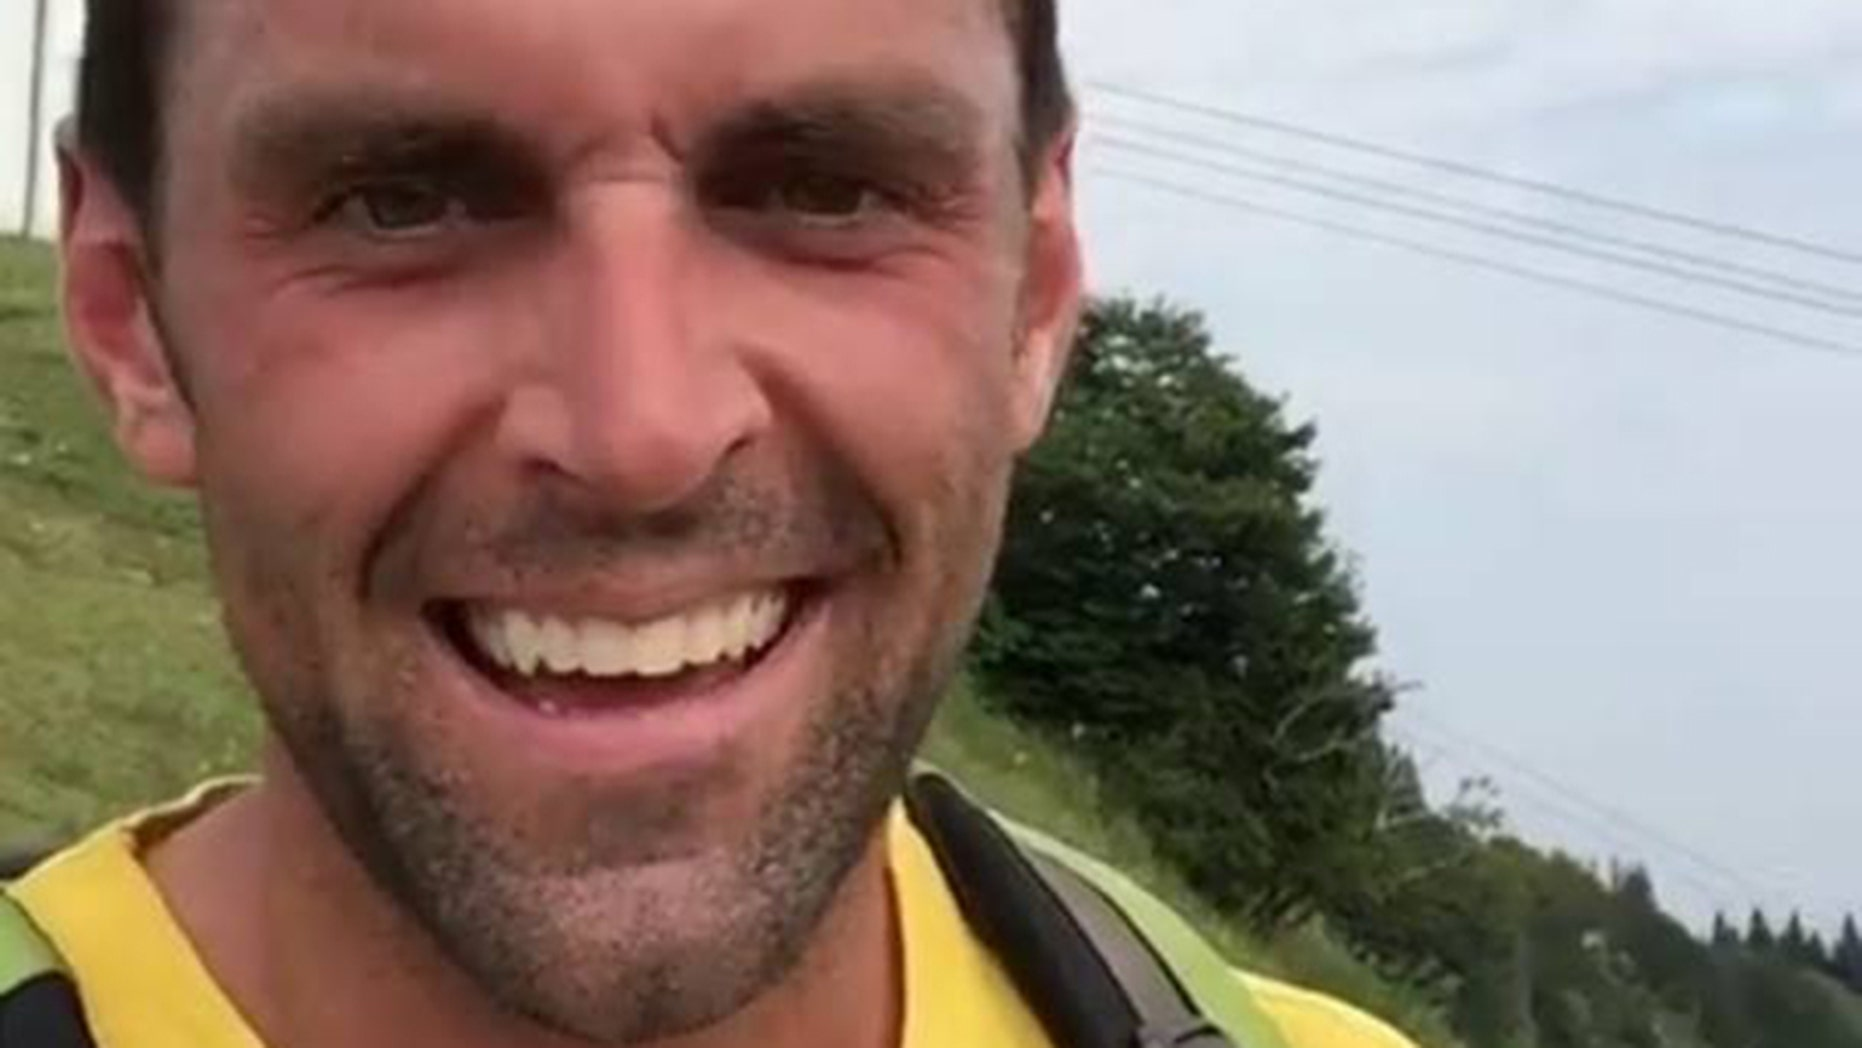 The body of Jeff Freiheit, 32, was located, three weeks after he went missing while hiking in the Balvarian Alps.